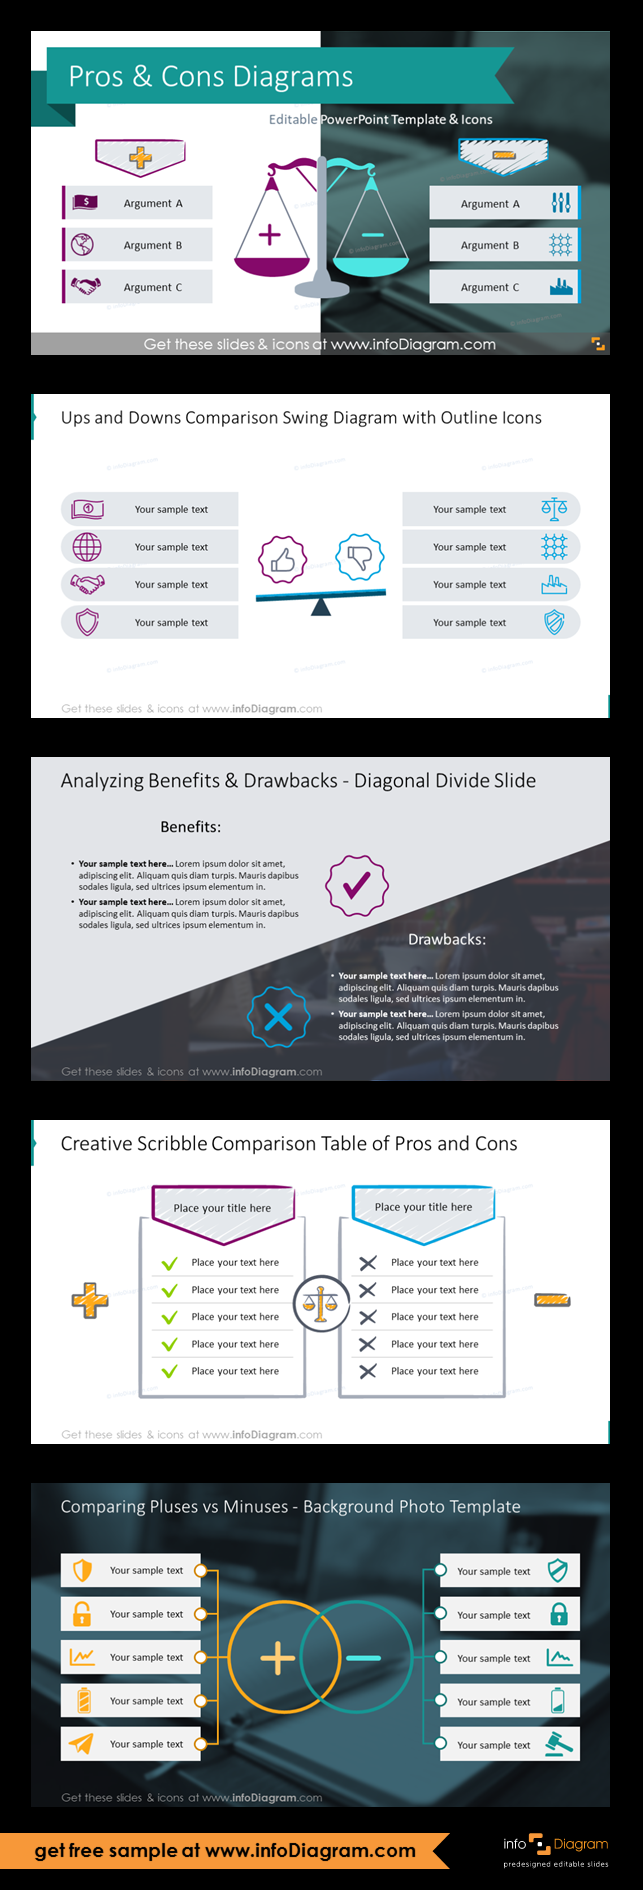 The Comparison Slide Examples That Can Help You To Present An Evaluation Of Product Pluses And